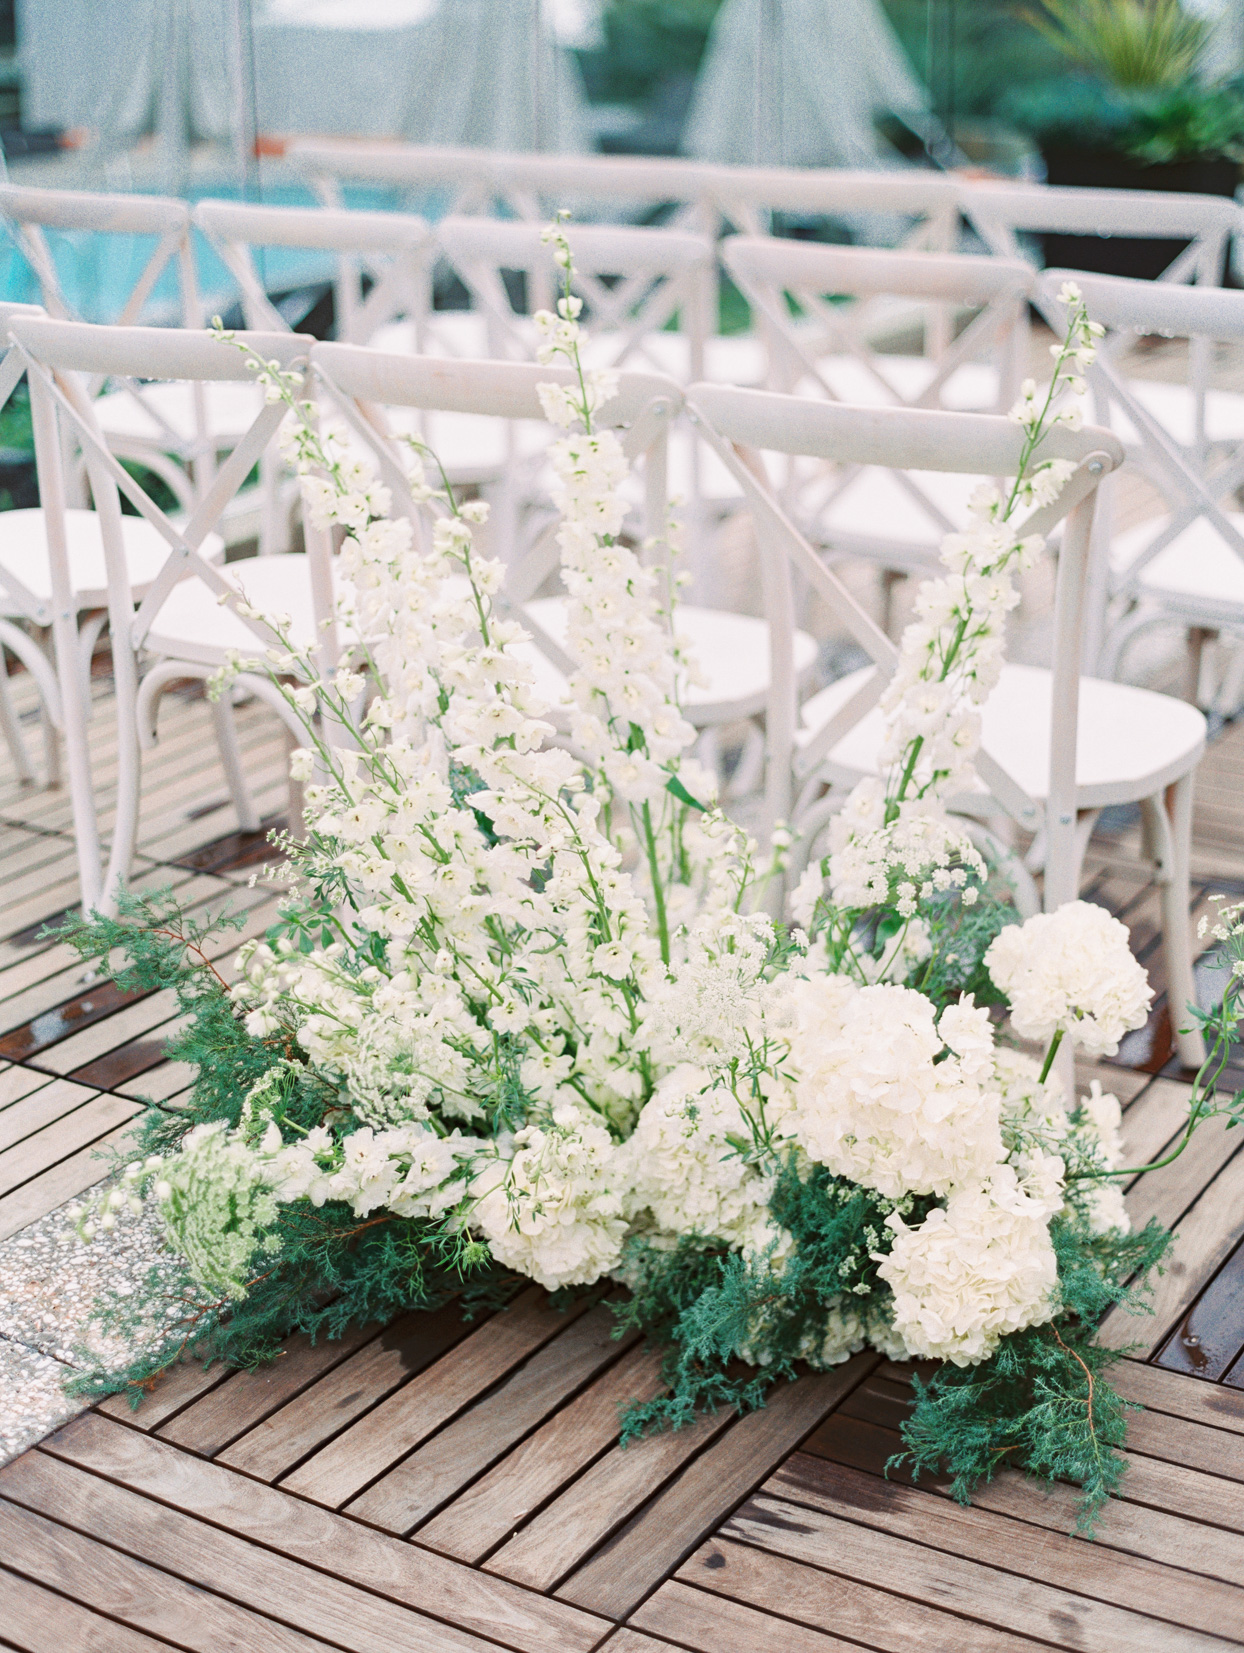 white floral arrangements at base of ceremony chairs